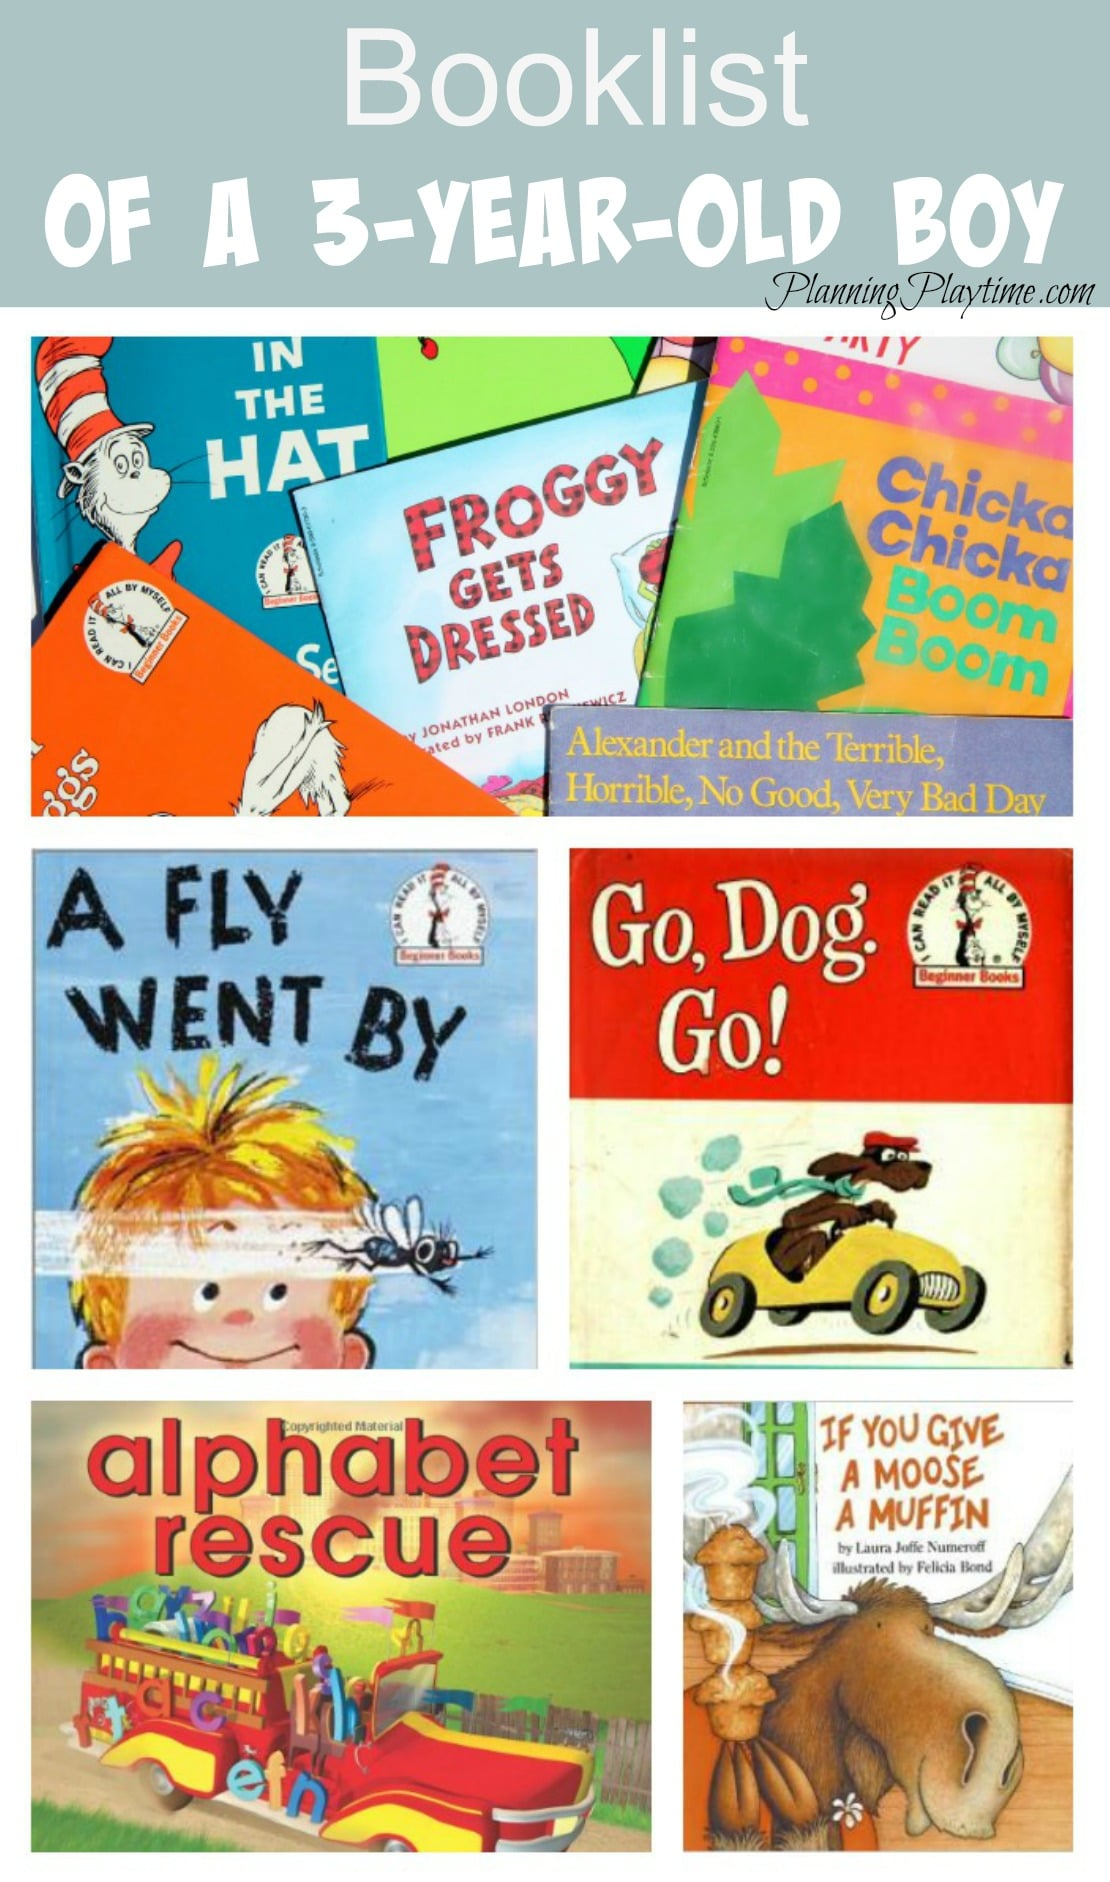 Top Book List For A 3 Year Old Boy Planning Playtime